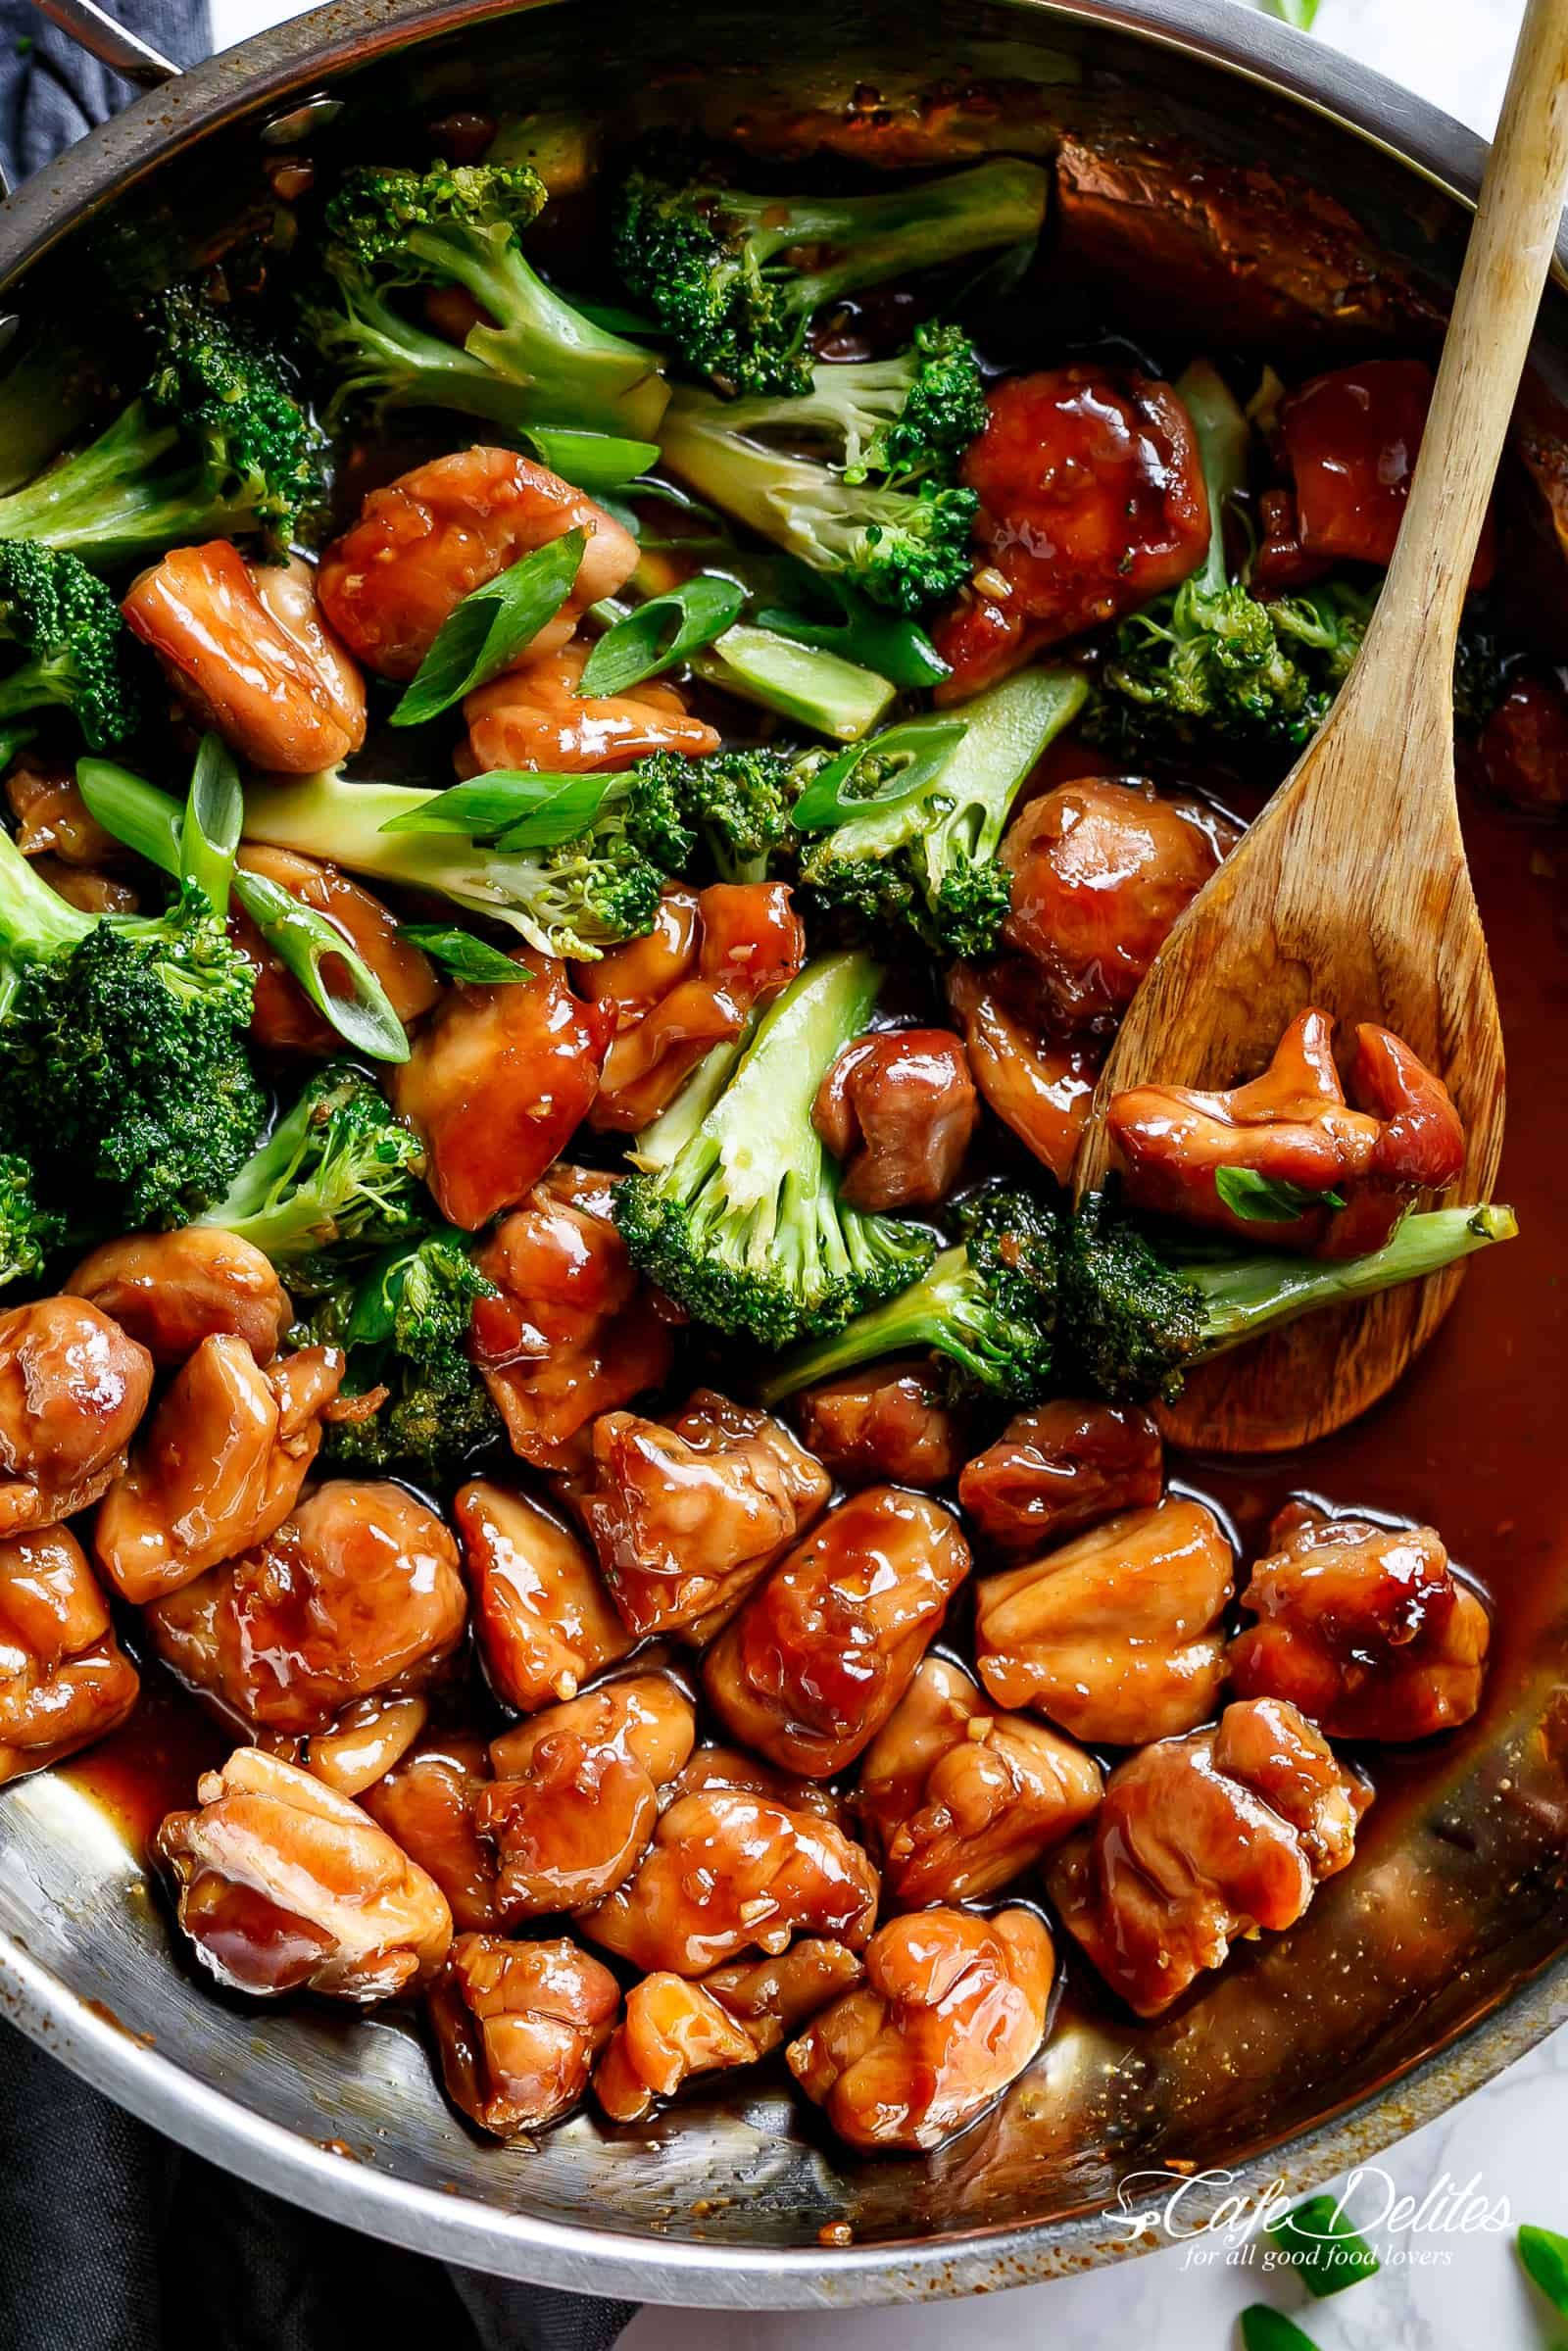 Just Cube And Cook Chicken Or Shrimp And Broccoli Carrots Or Other Veggies In A P Chicken